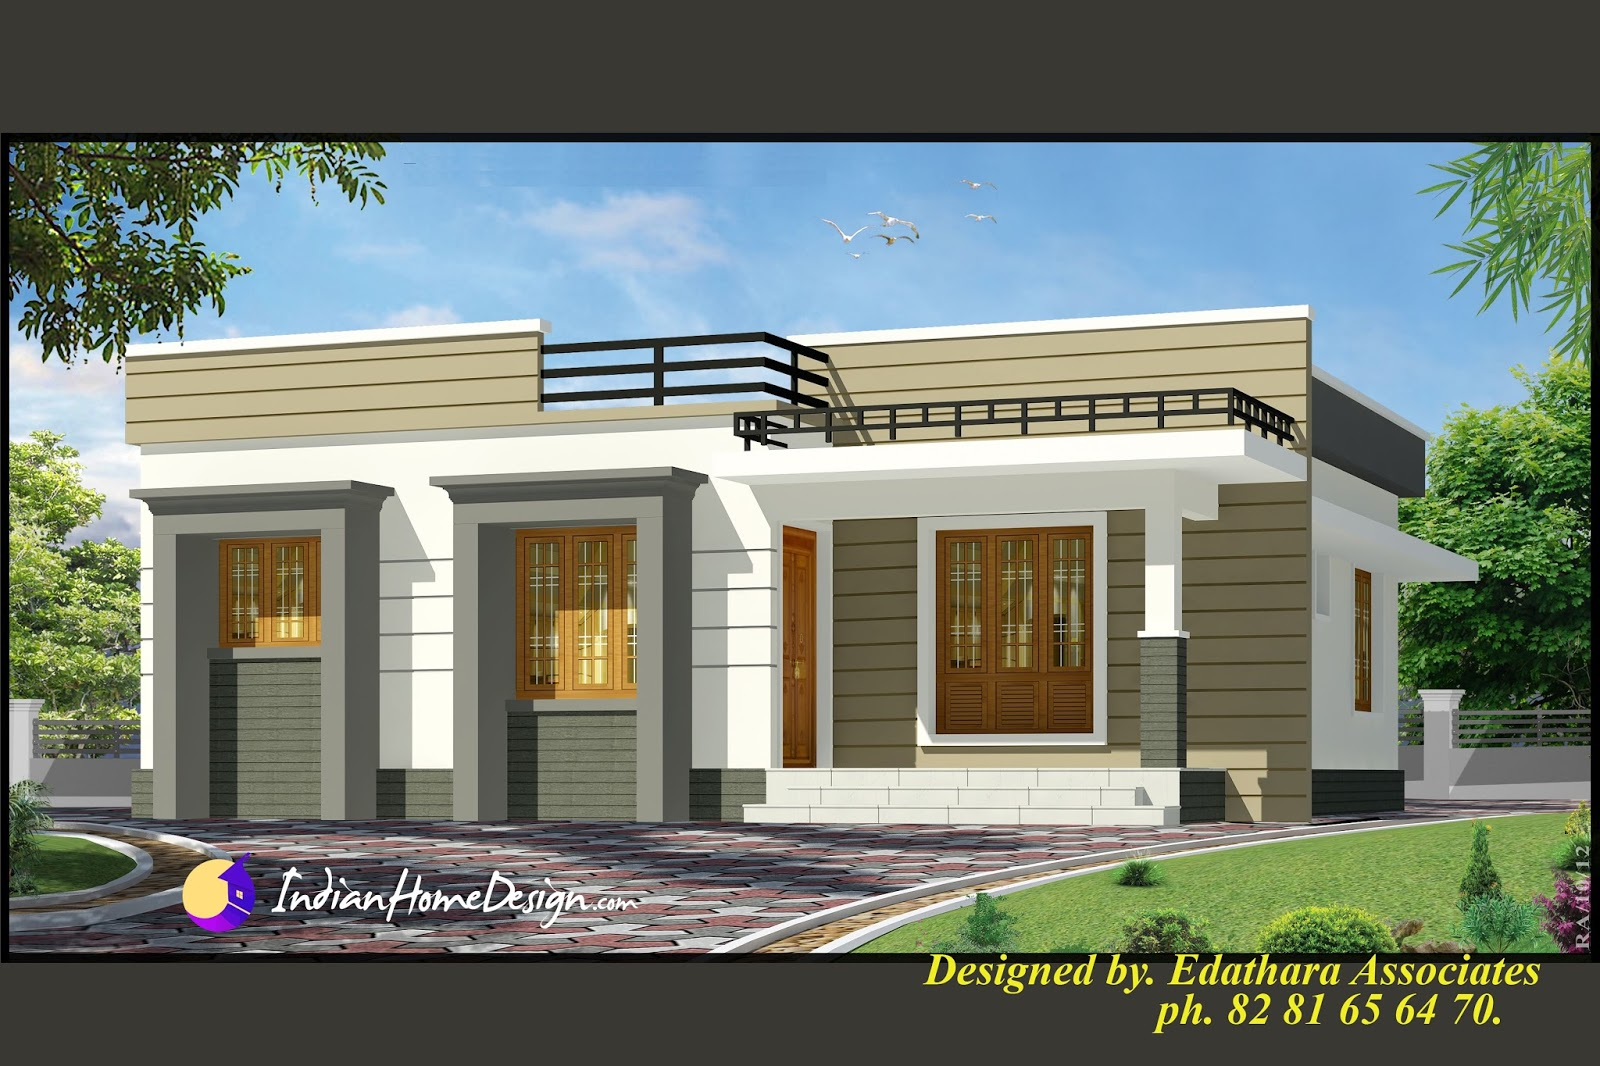 998 sqft modern single floor kerala home design indian for 3 bedroom house plans indian style